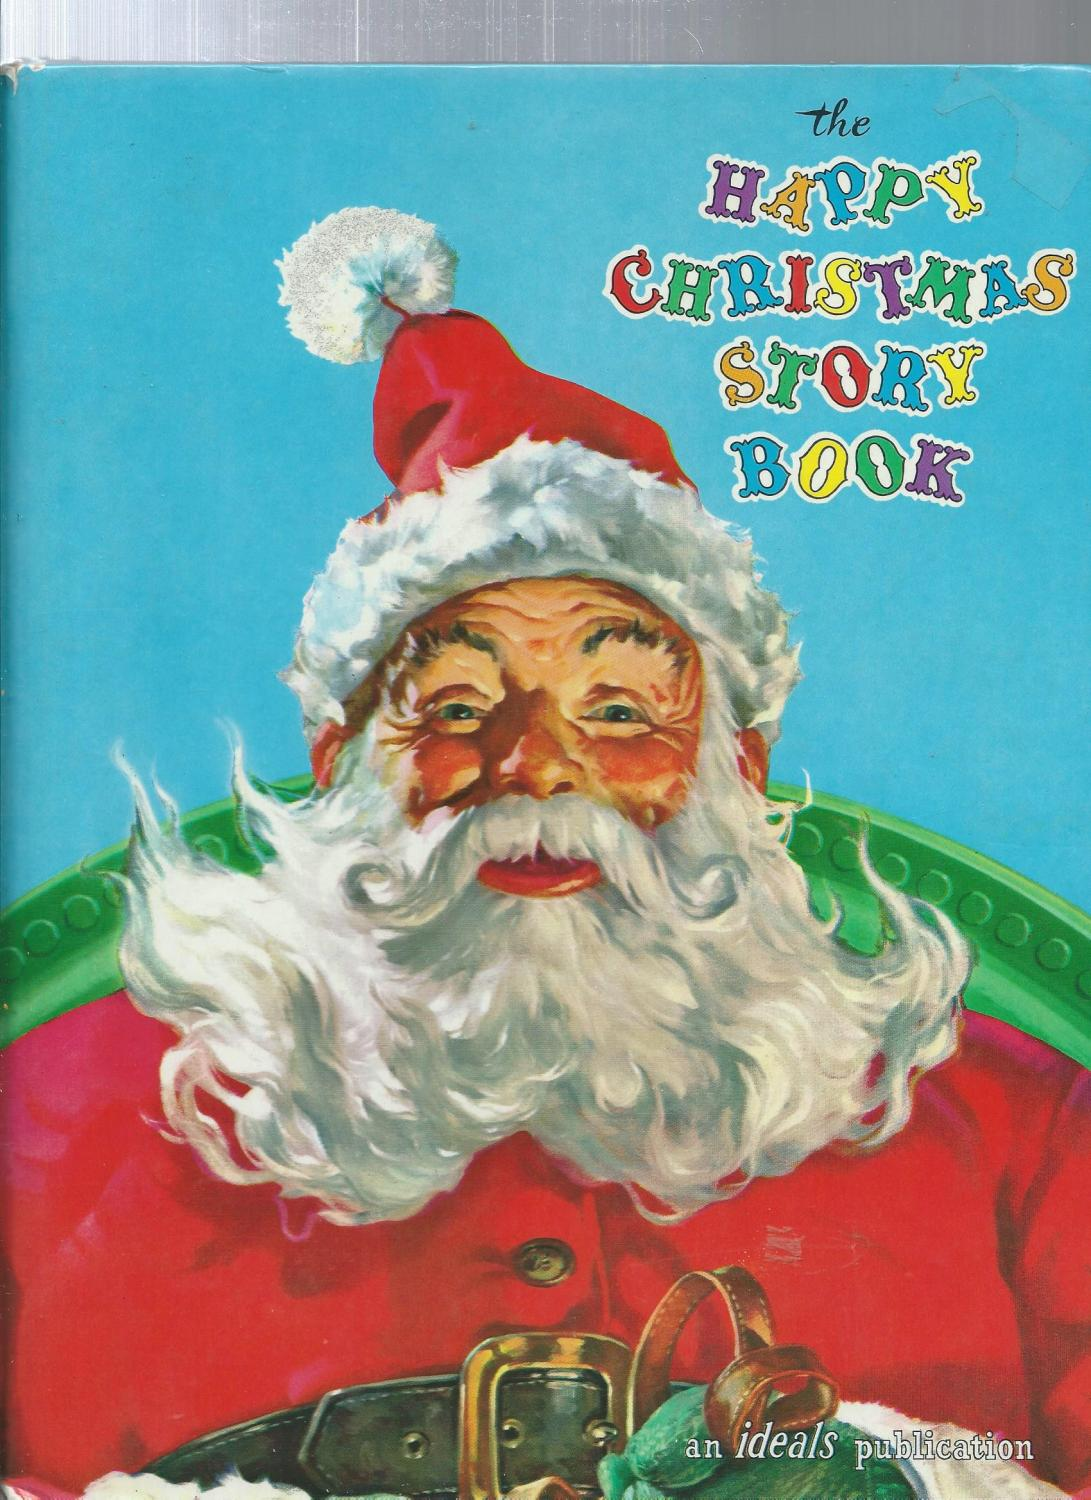 The Christmas Story Book.The Happy Christmas Story Book